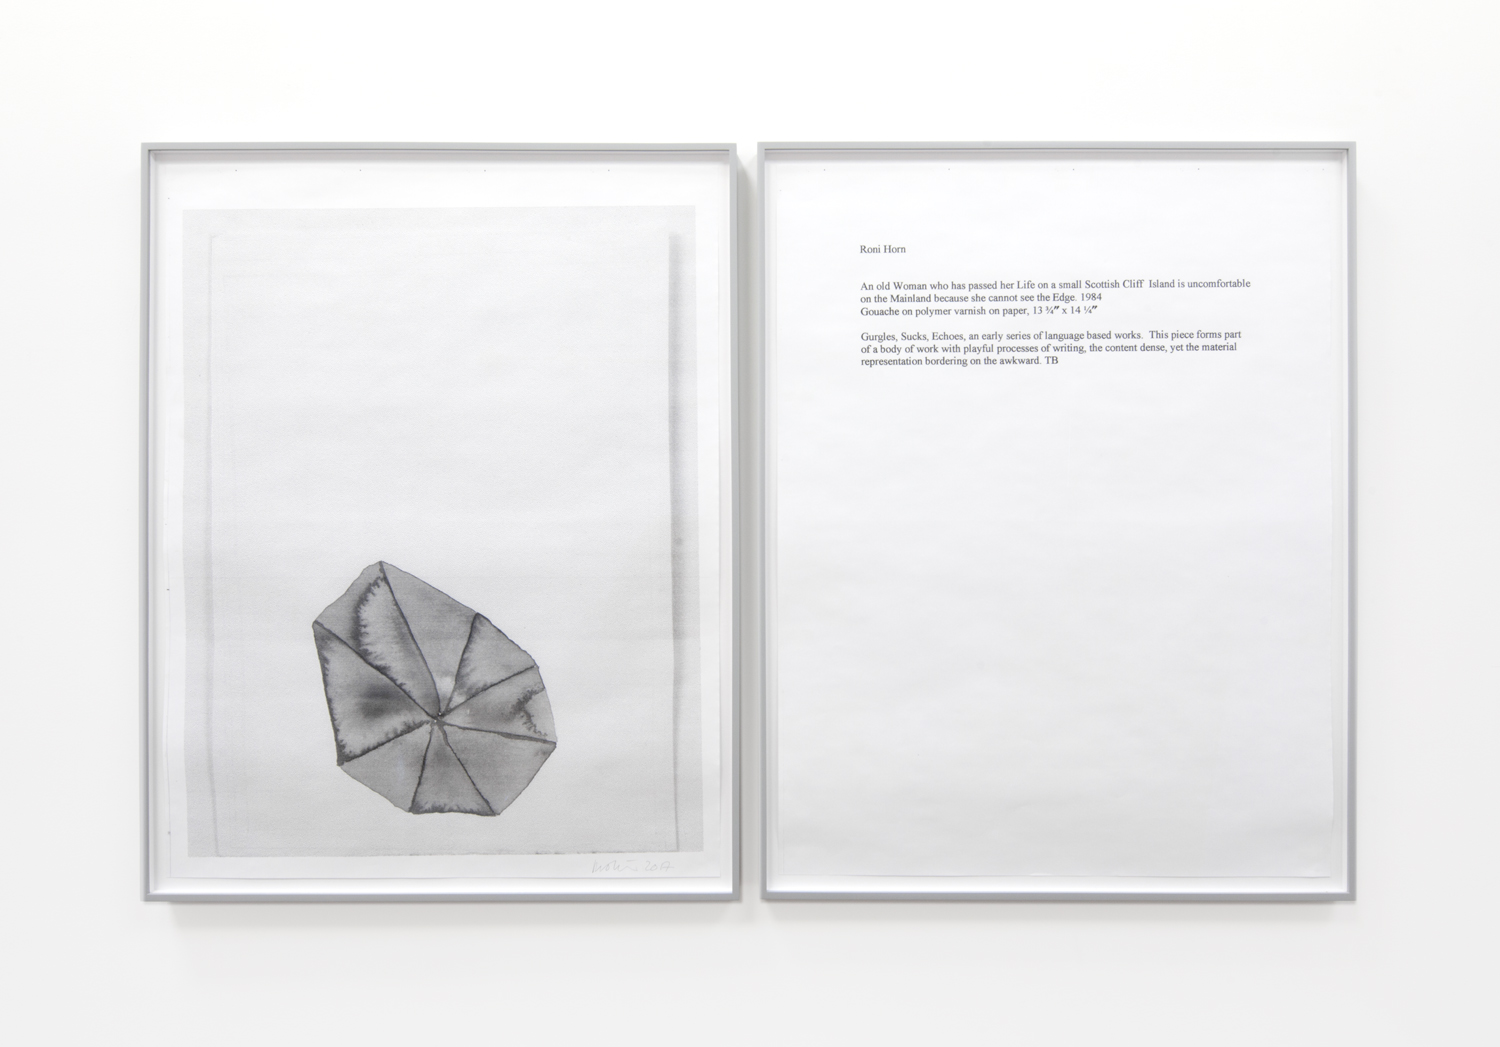 One Work with Footnote (Roni Horn)   2015-2017 diptych; hybrid prints edition 1 of 1 36 x 29 inches each